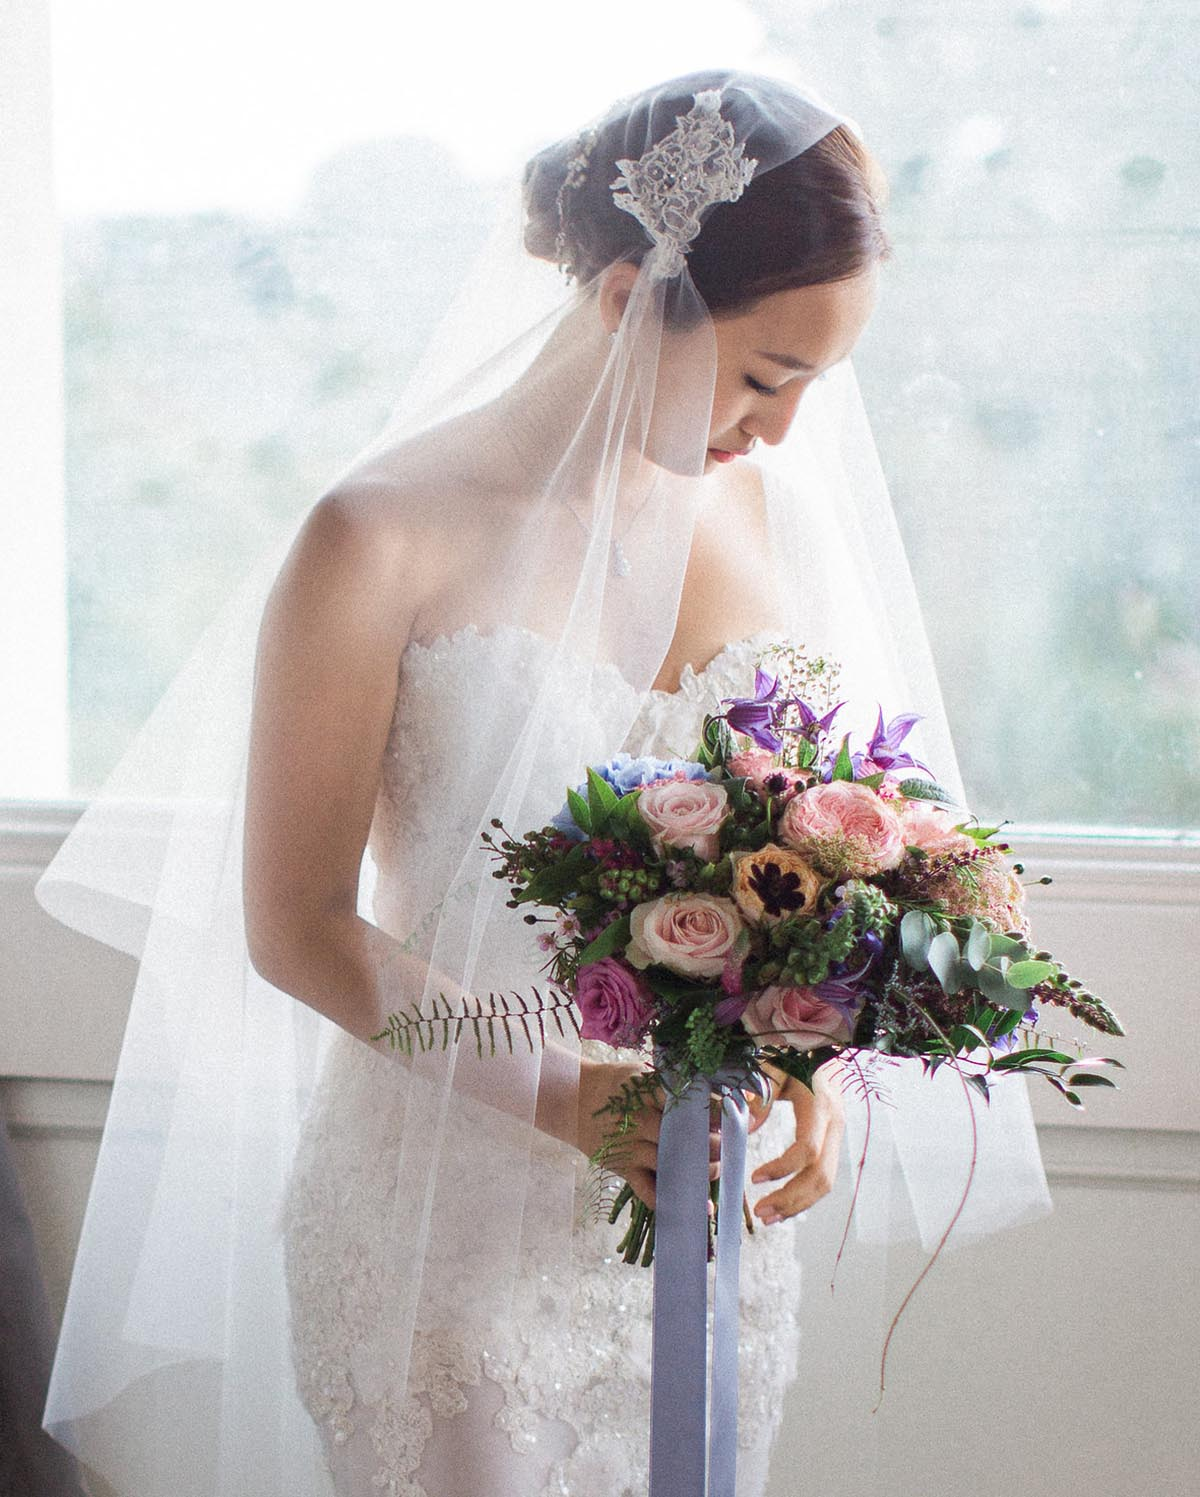 Korean bride-with-circle-veil-and-strapless-lace-dress-with-bouquet